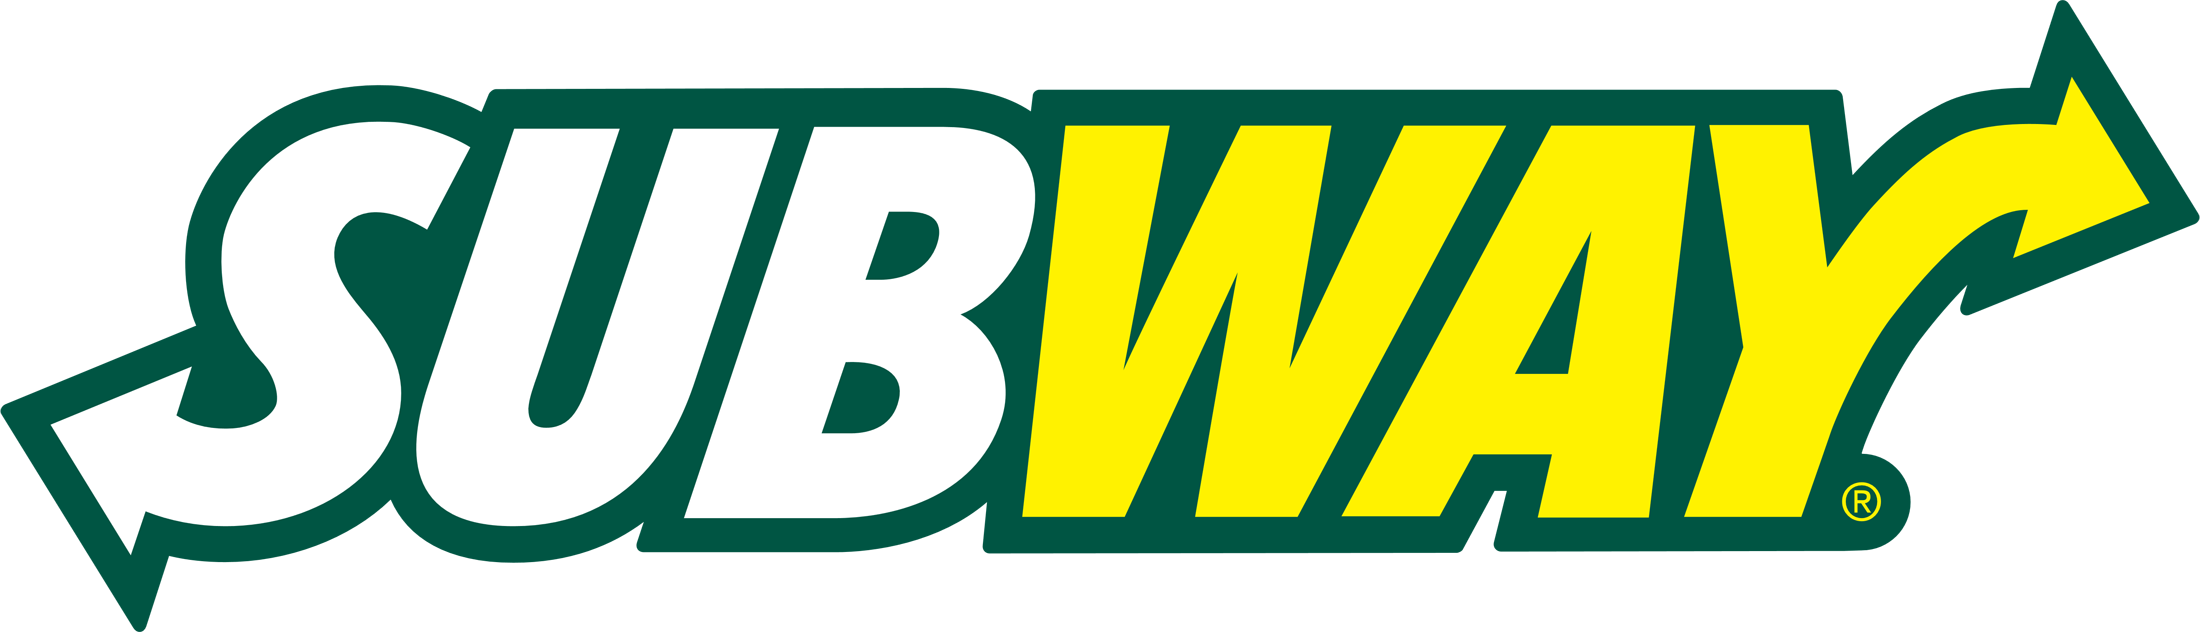 Meaning Subway logo and symbol.